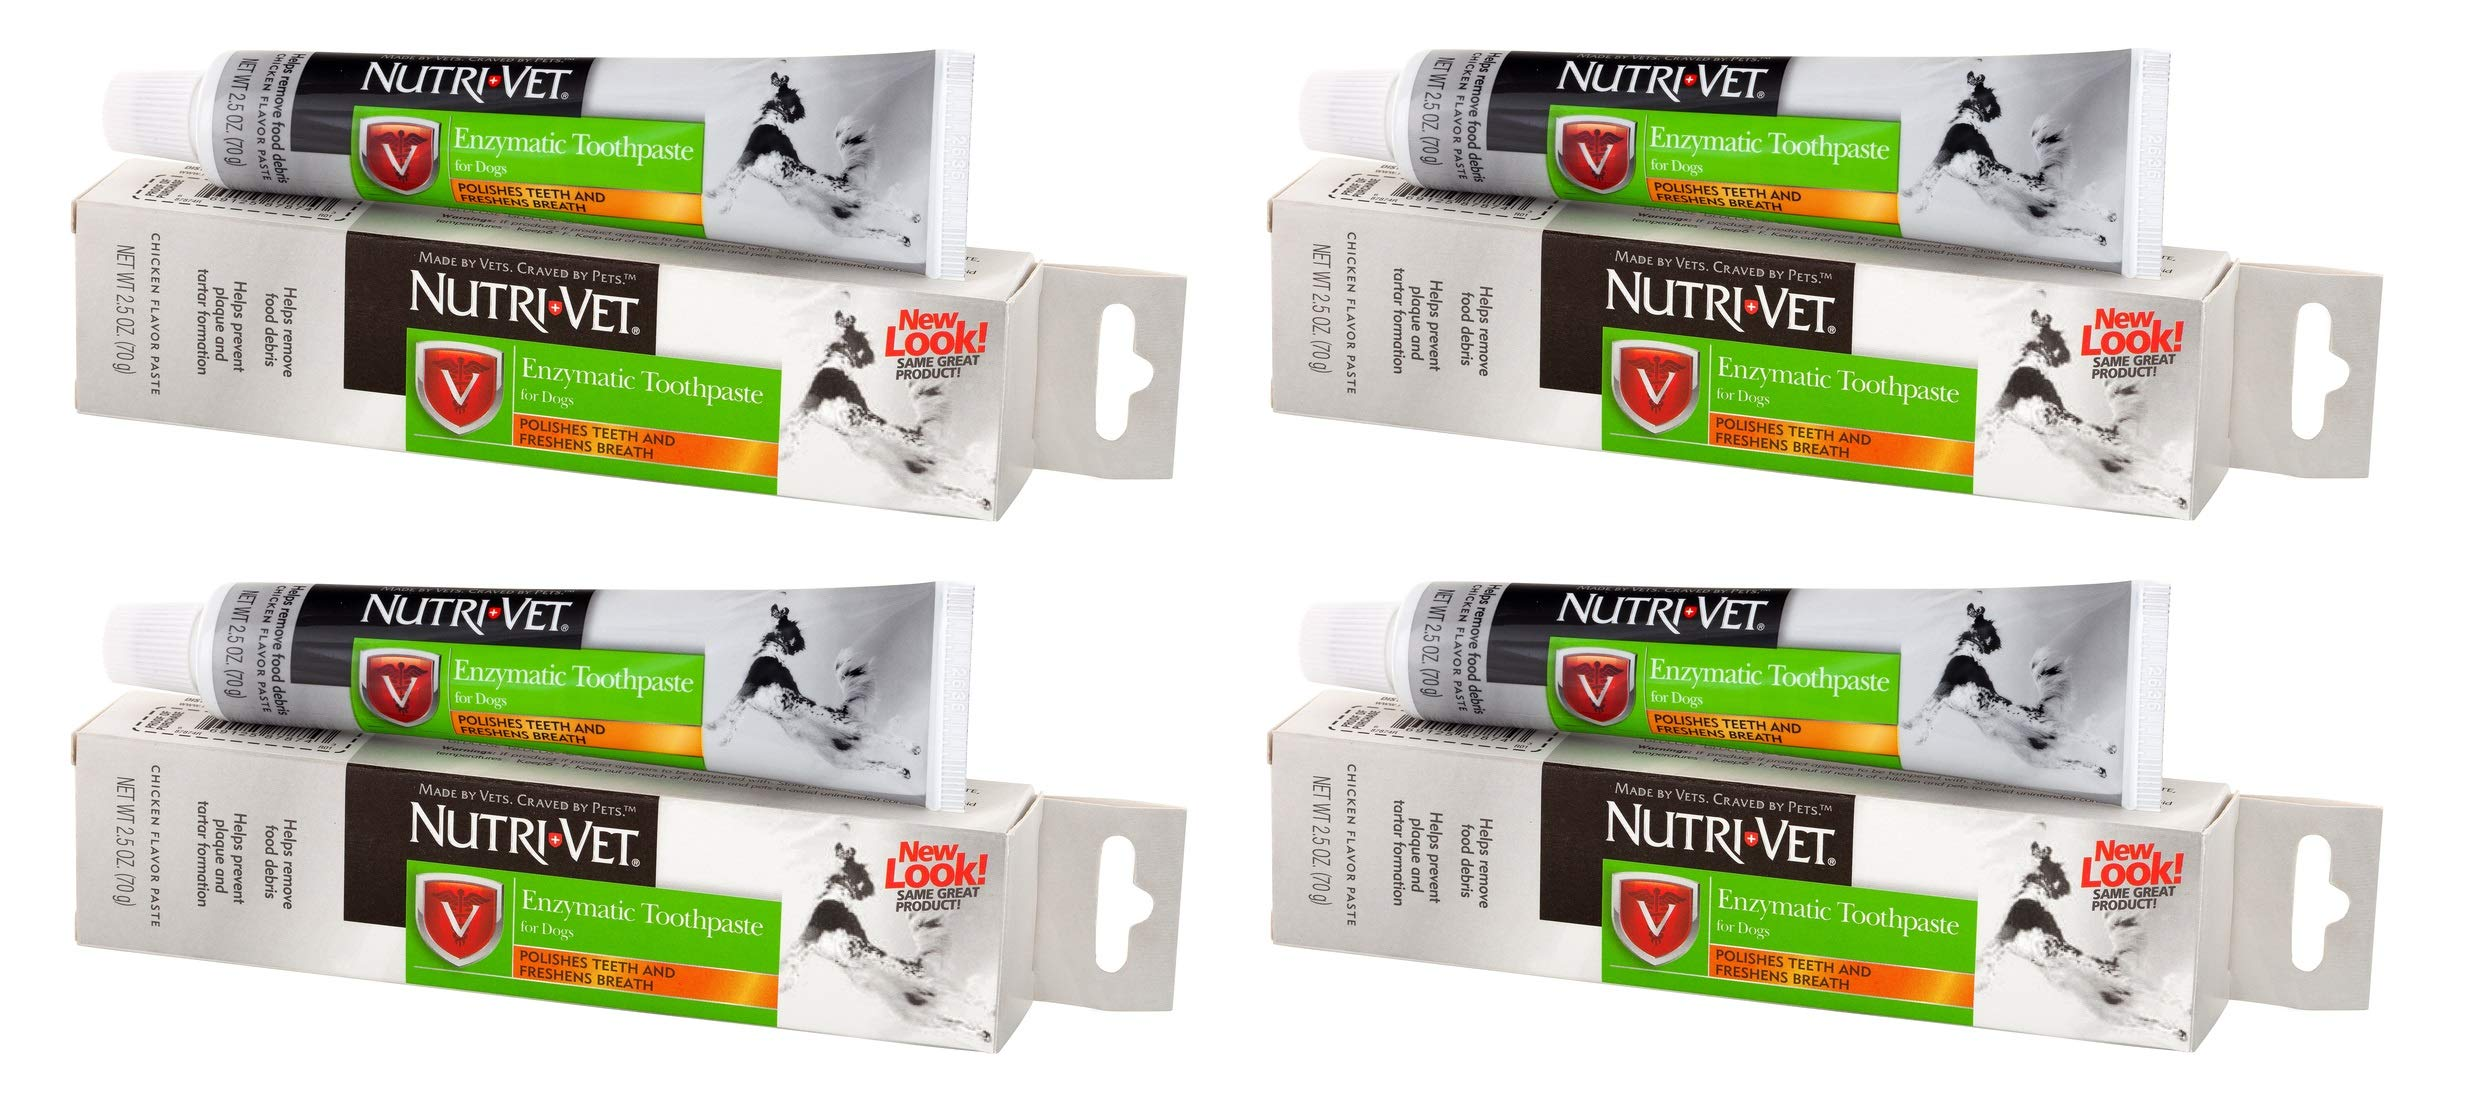 Nutri-Vet 4 Pack of Enzymatic Toothpaste for Dogs, 2.5 Ounces Each, Chicken Flavor by Nutri-Vet